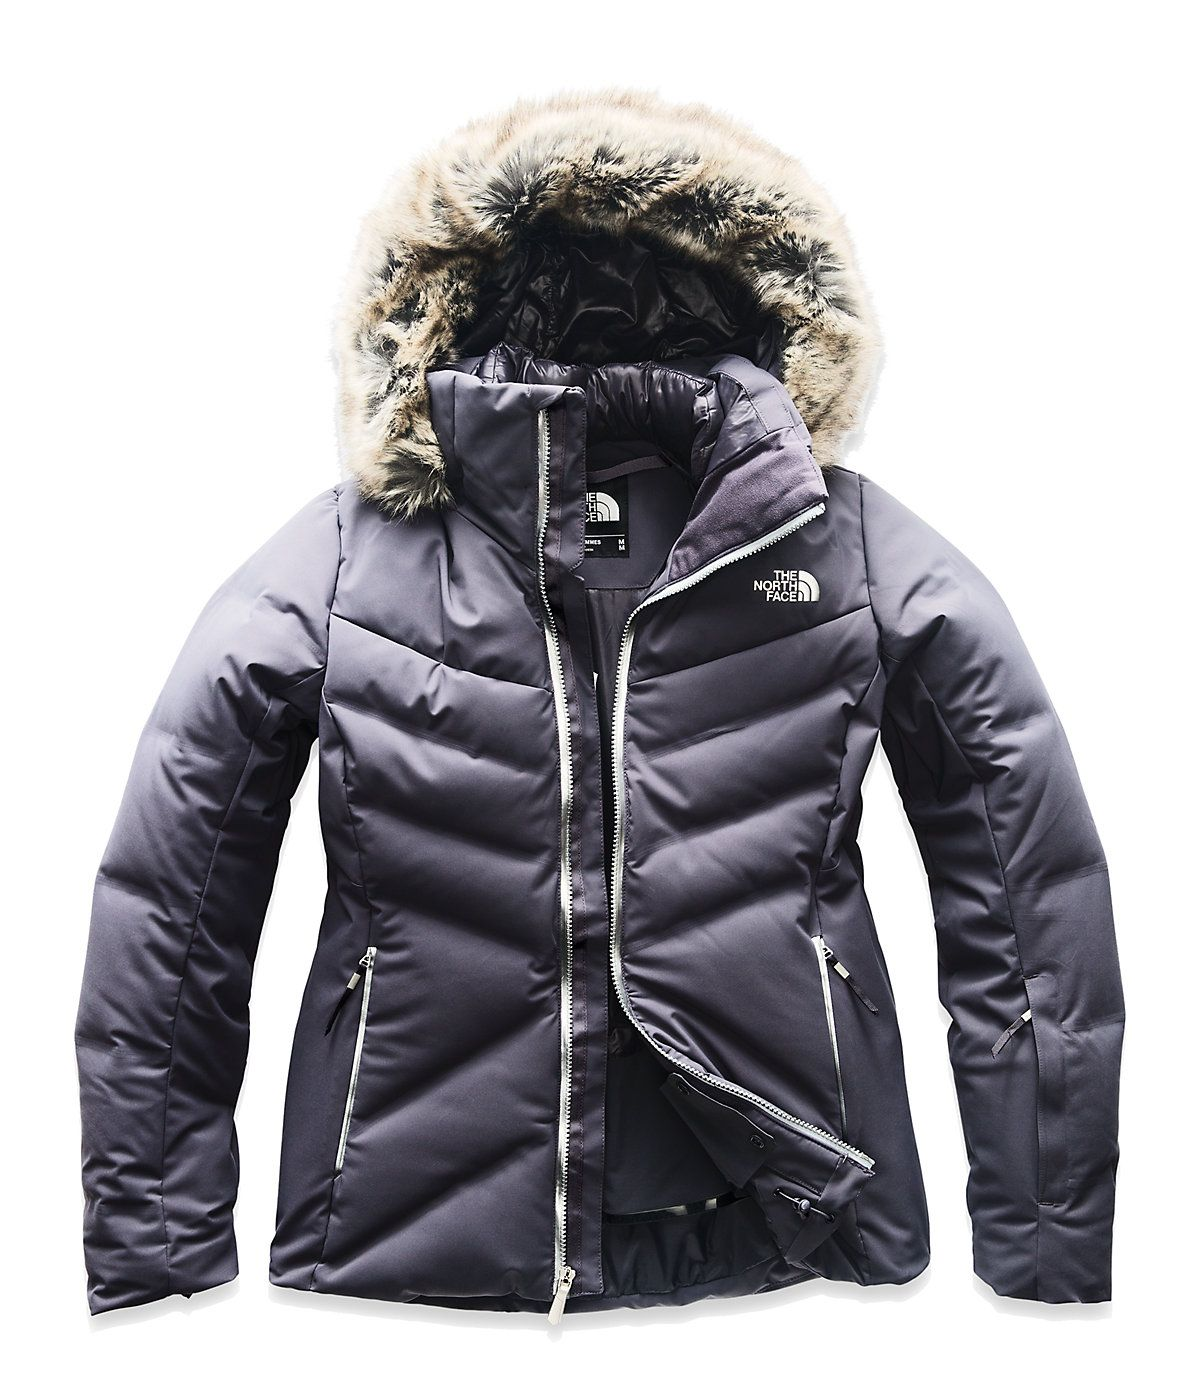 61e52e4eb Women's Cirque Down Jacket in 2019   Products   Jackets, Jackets for ...